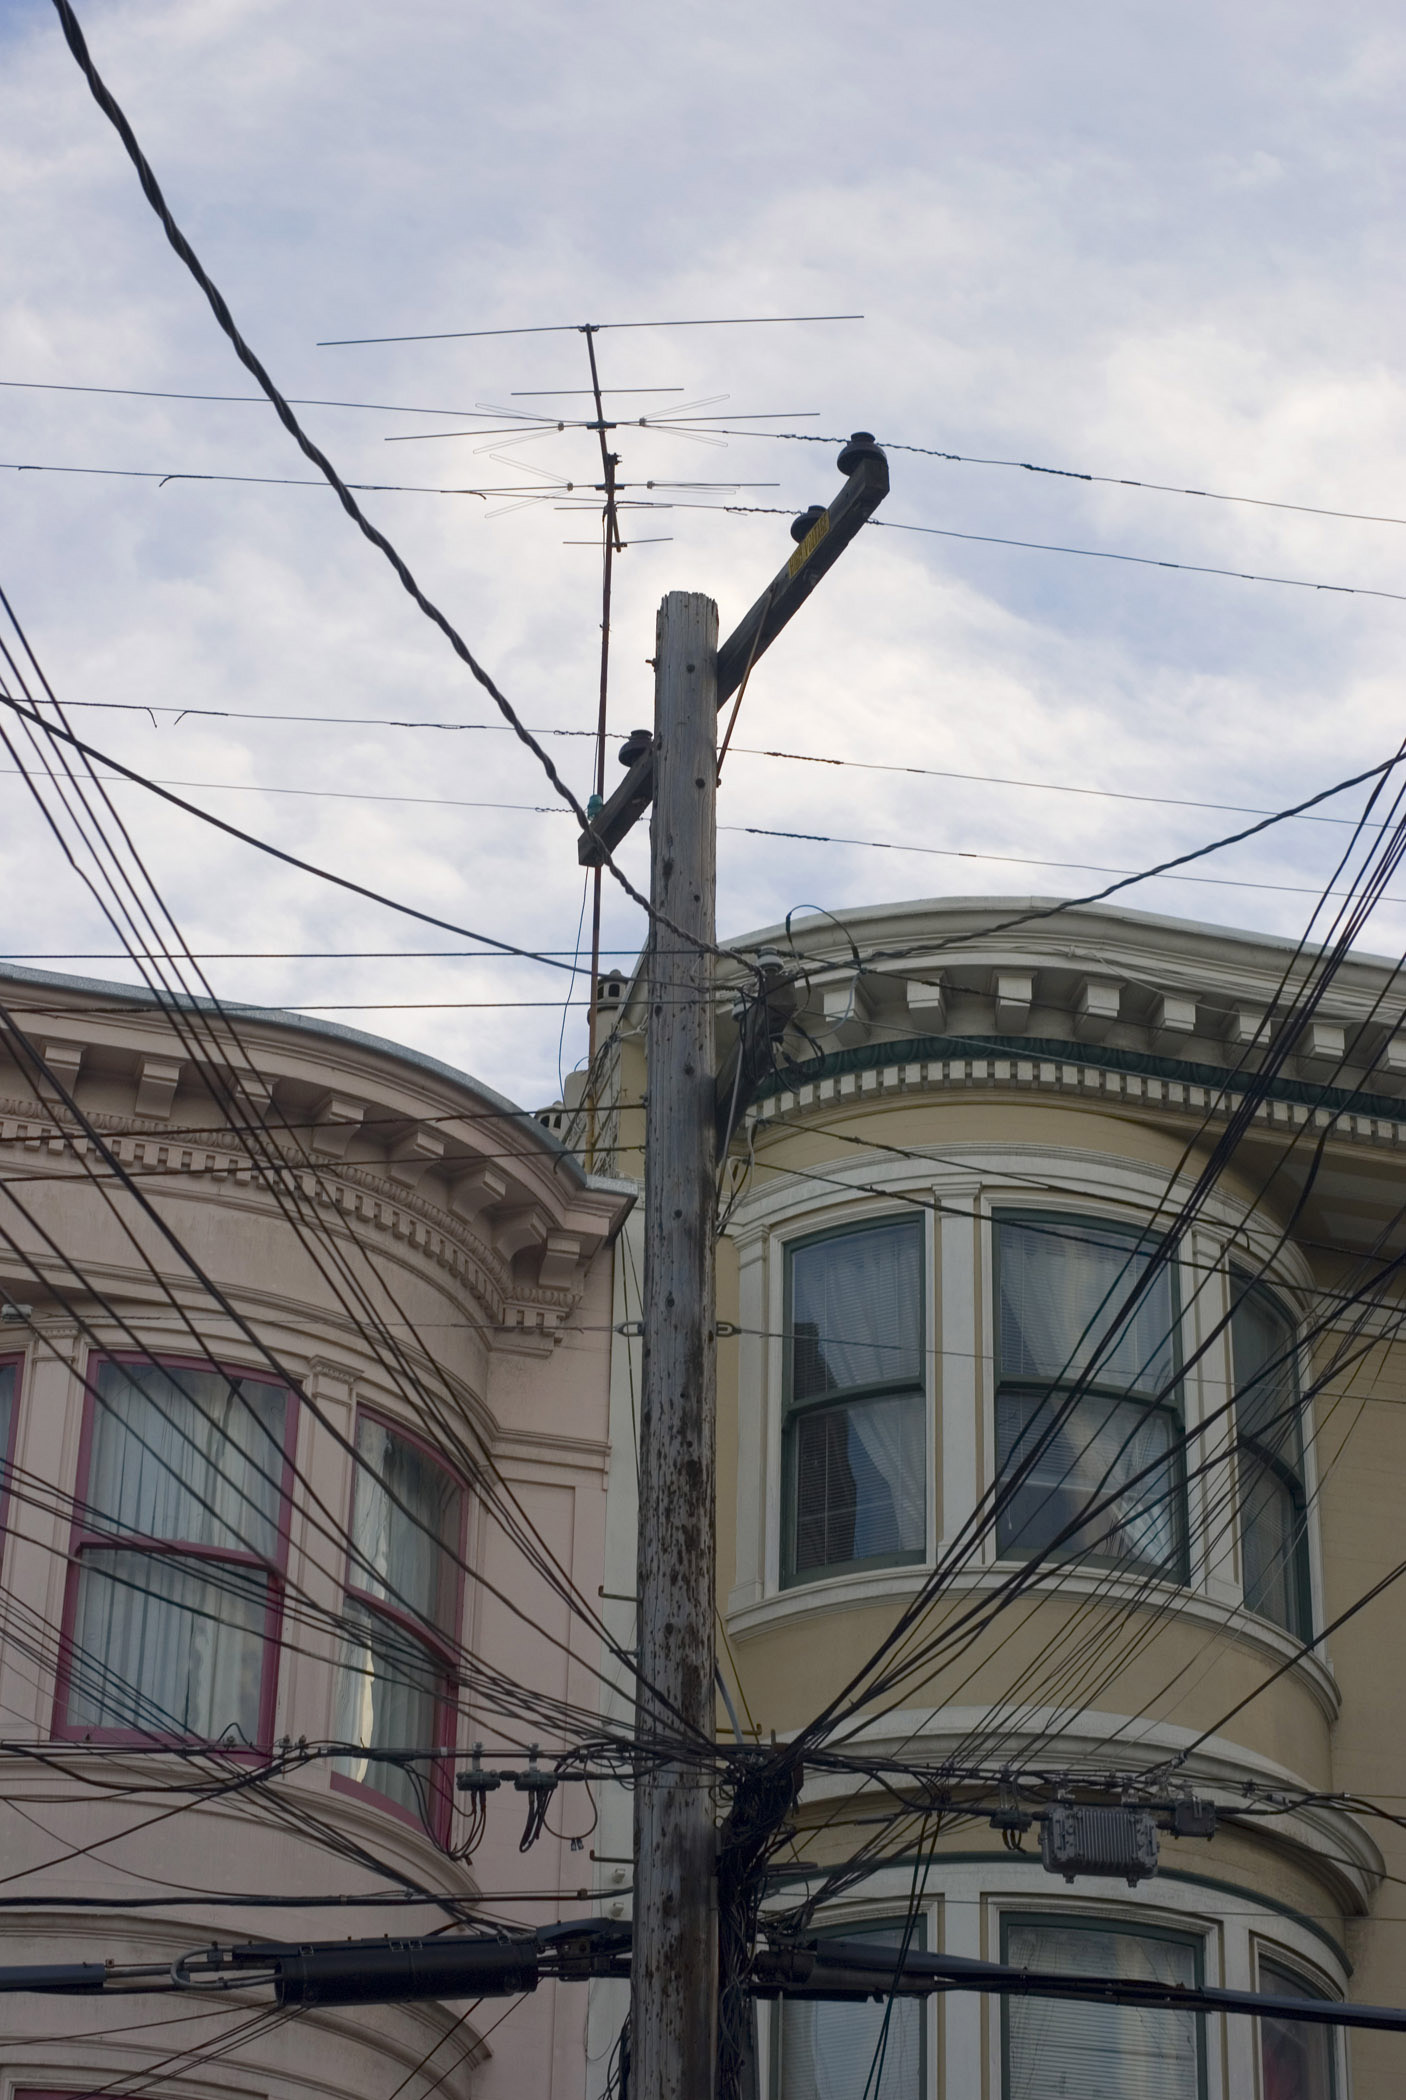 San Francisco architecture with a view of the historical wooden facades of townhouses past a spaghetti junction electricity pole